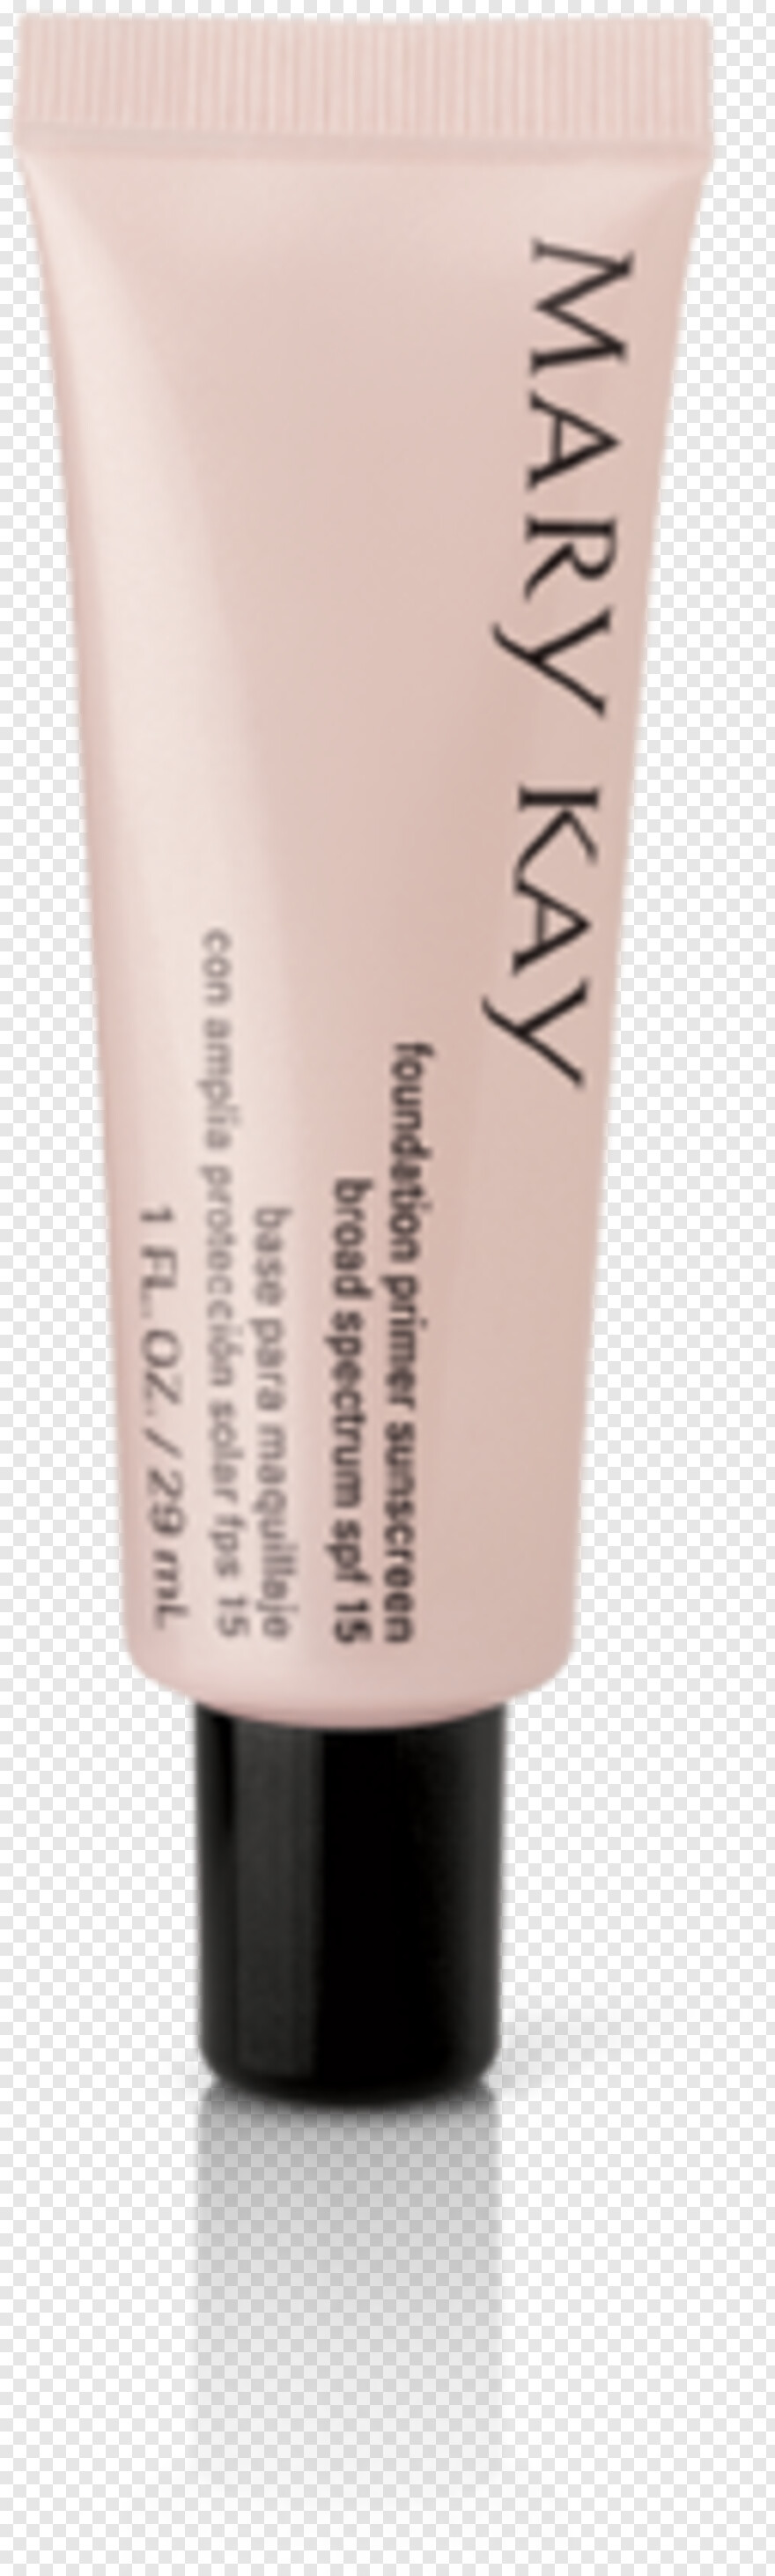 Mary Kay Logo Mary Kay Foundation Primer Sunscreen Broad Spectrum Transparent Png 127x422 1354439 Png Image Pngjoy